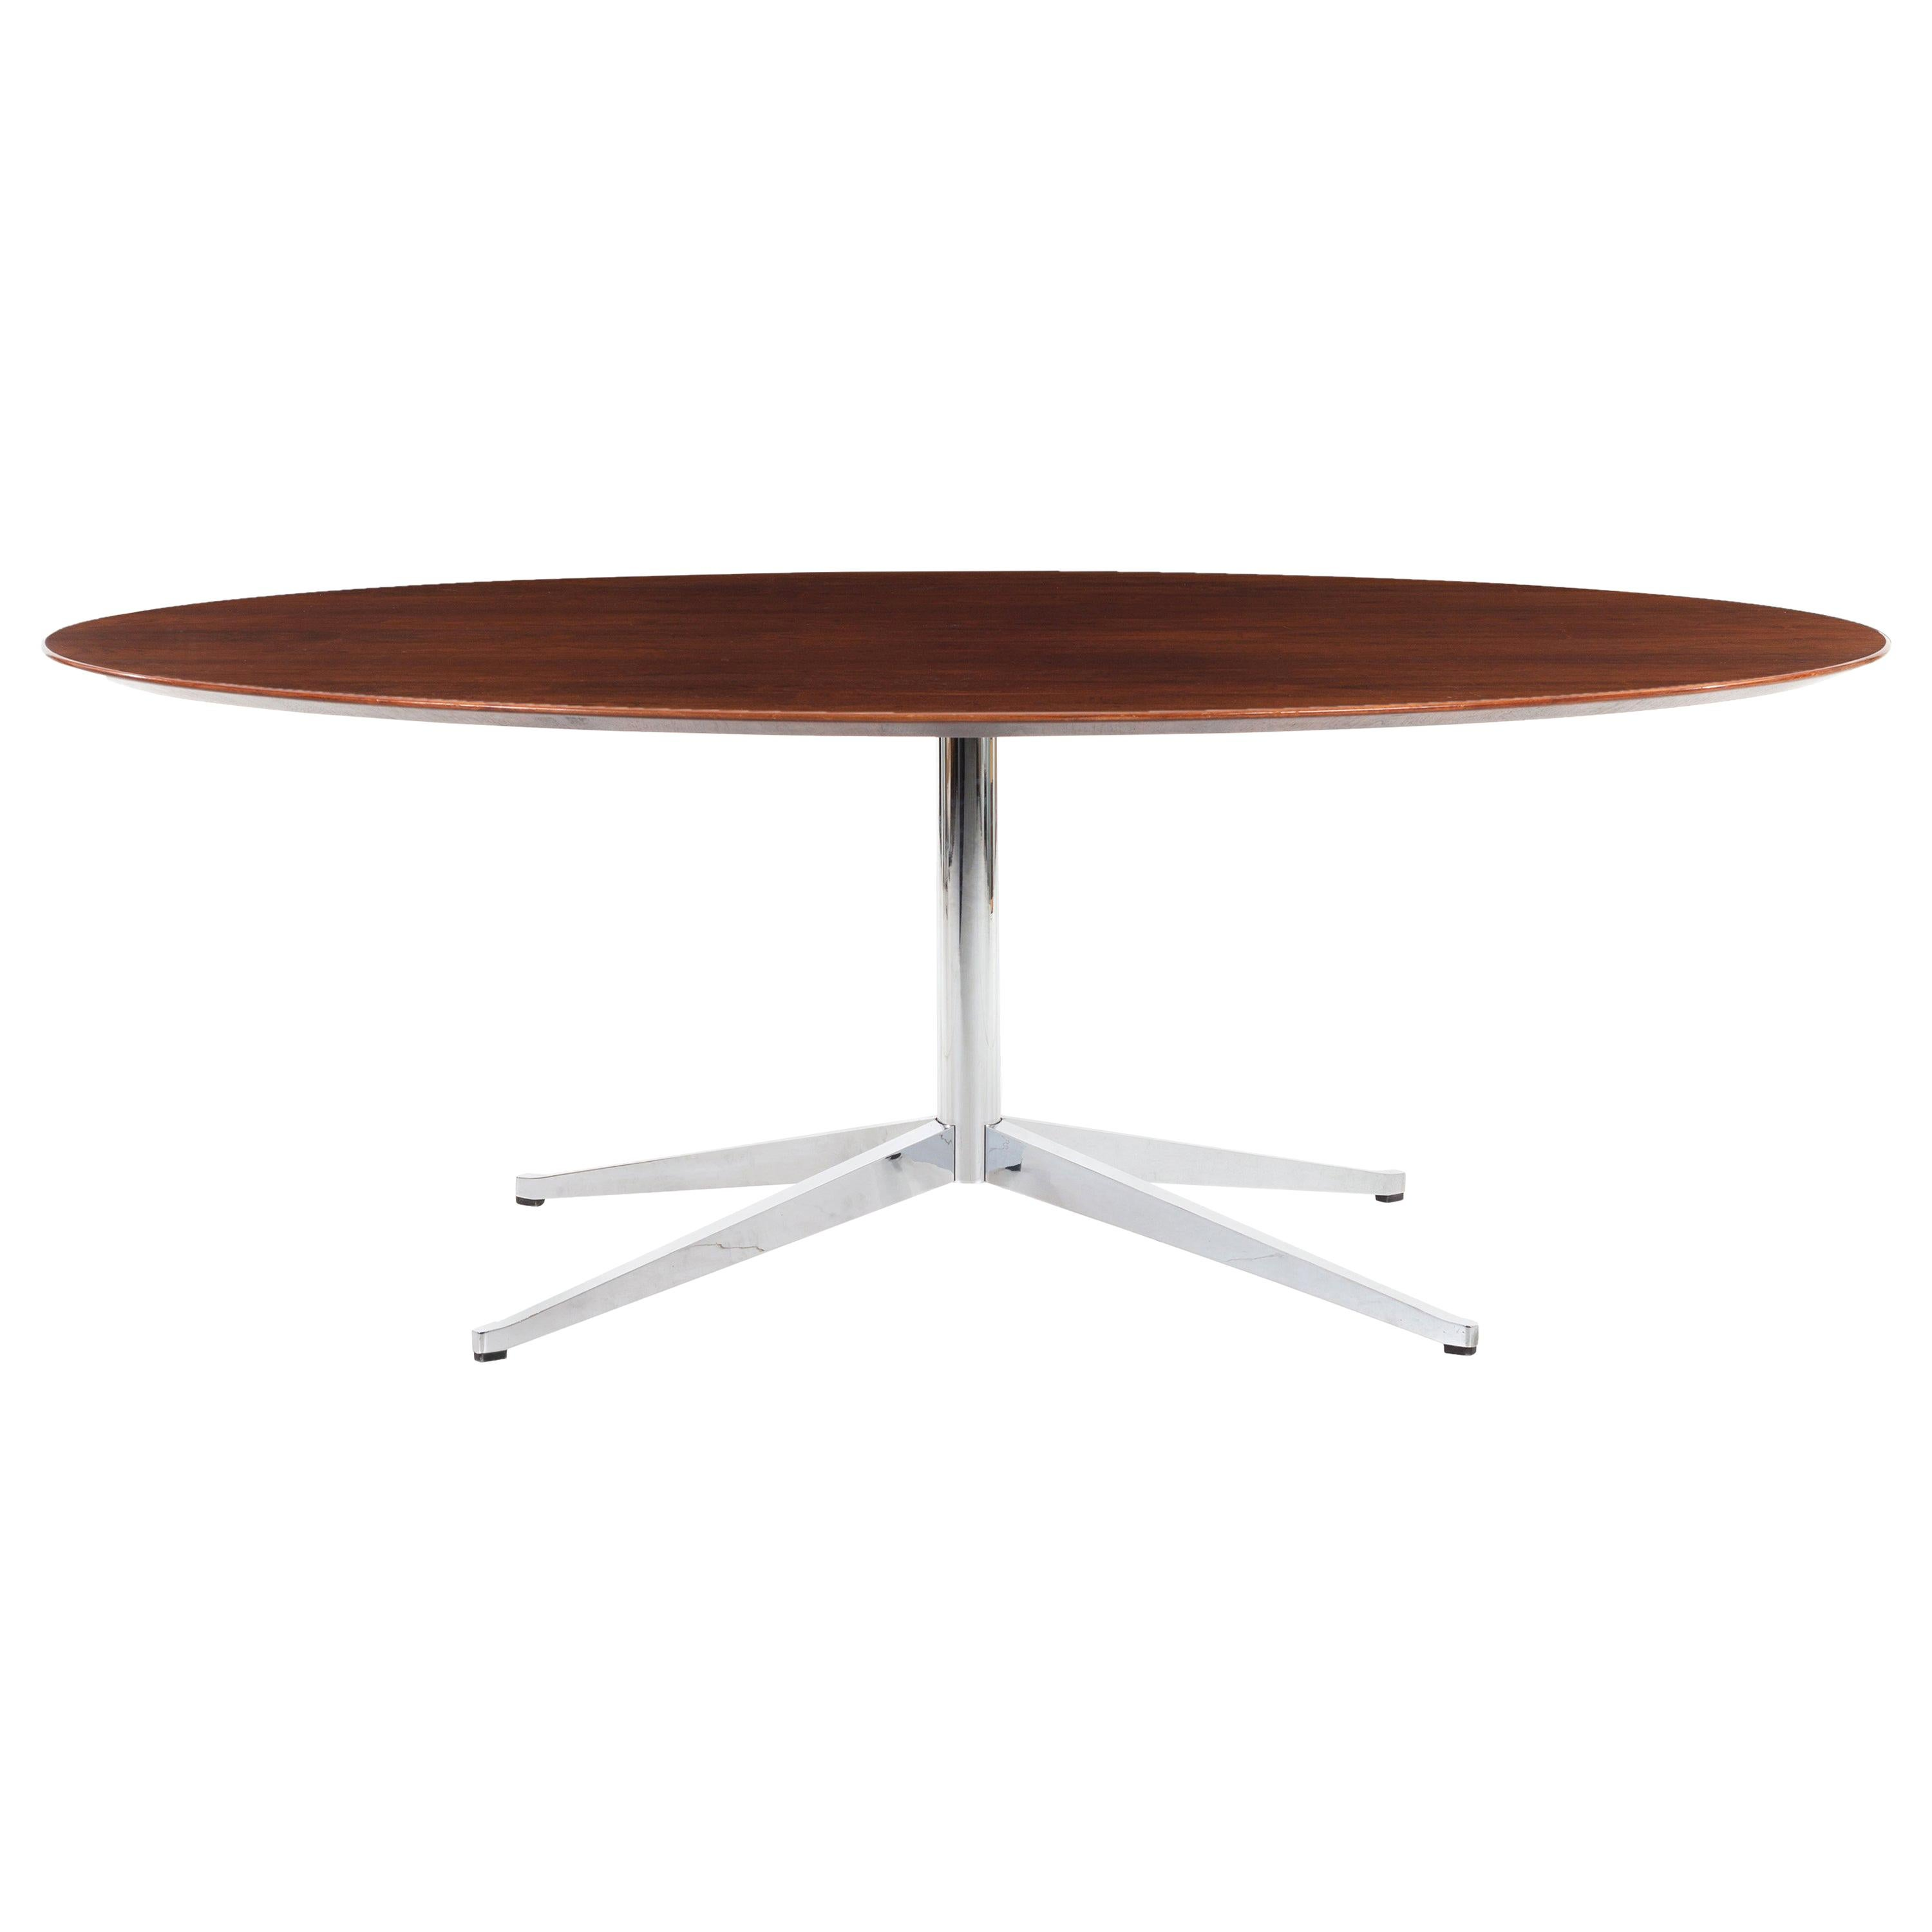 Florence Knoll Rosewood Dining Table or Desk